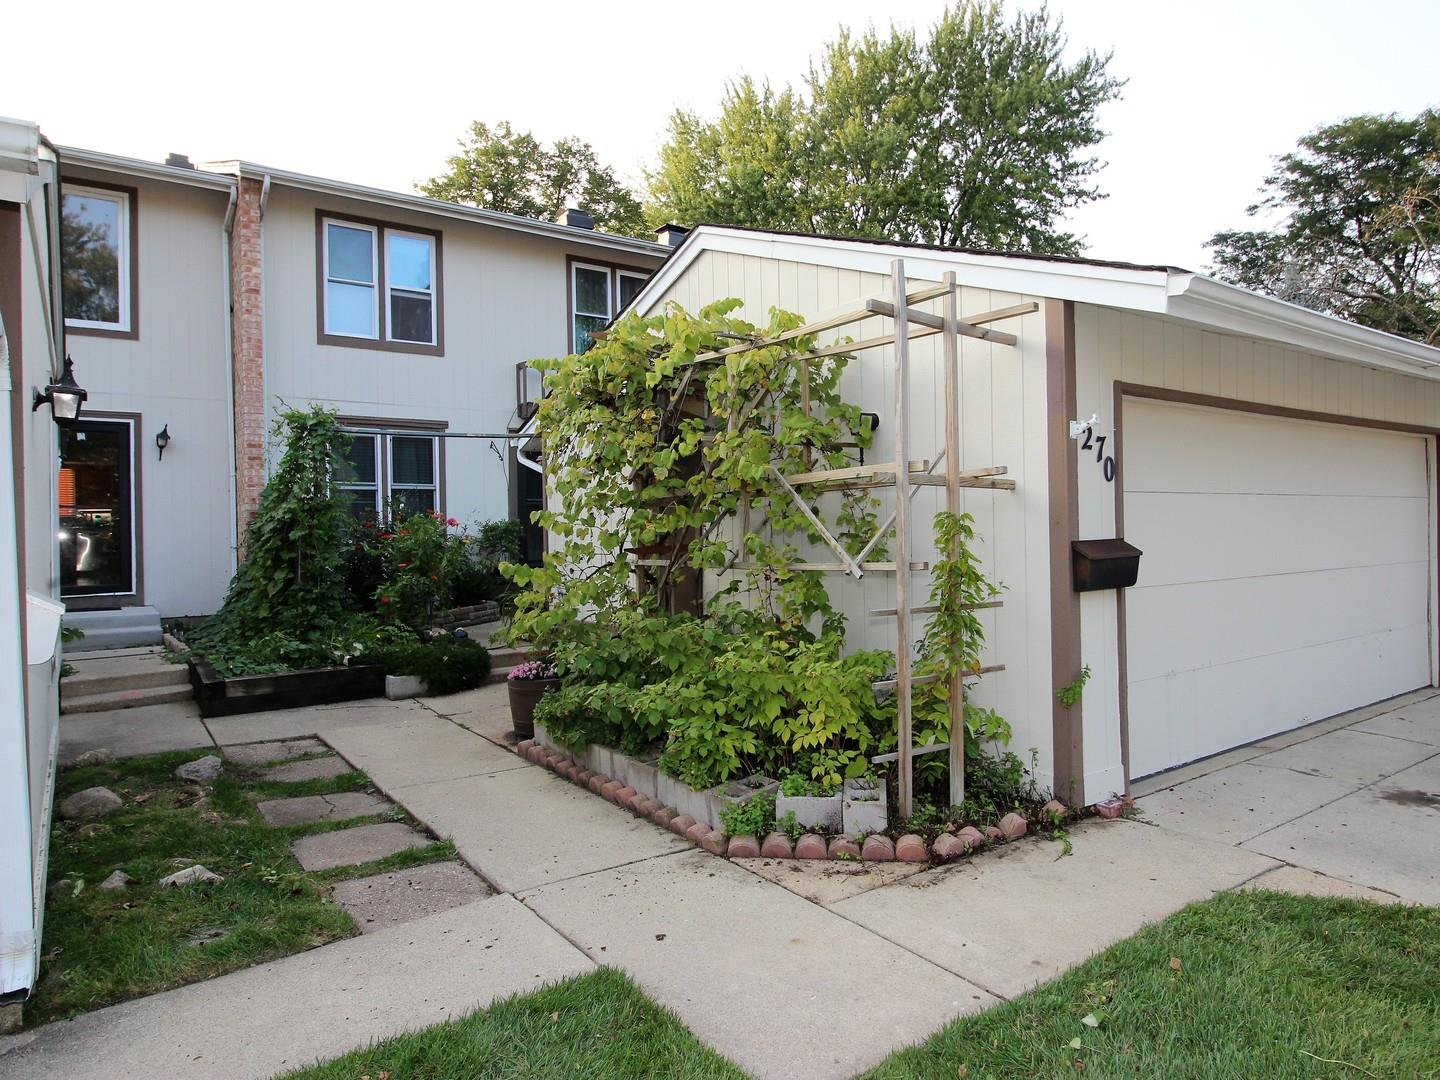 270 lakeshore Lane #270, Bloomingdale, IL 60108 - #: 10862771